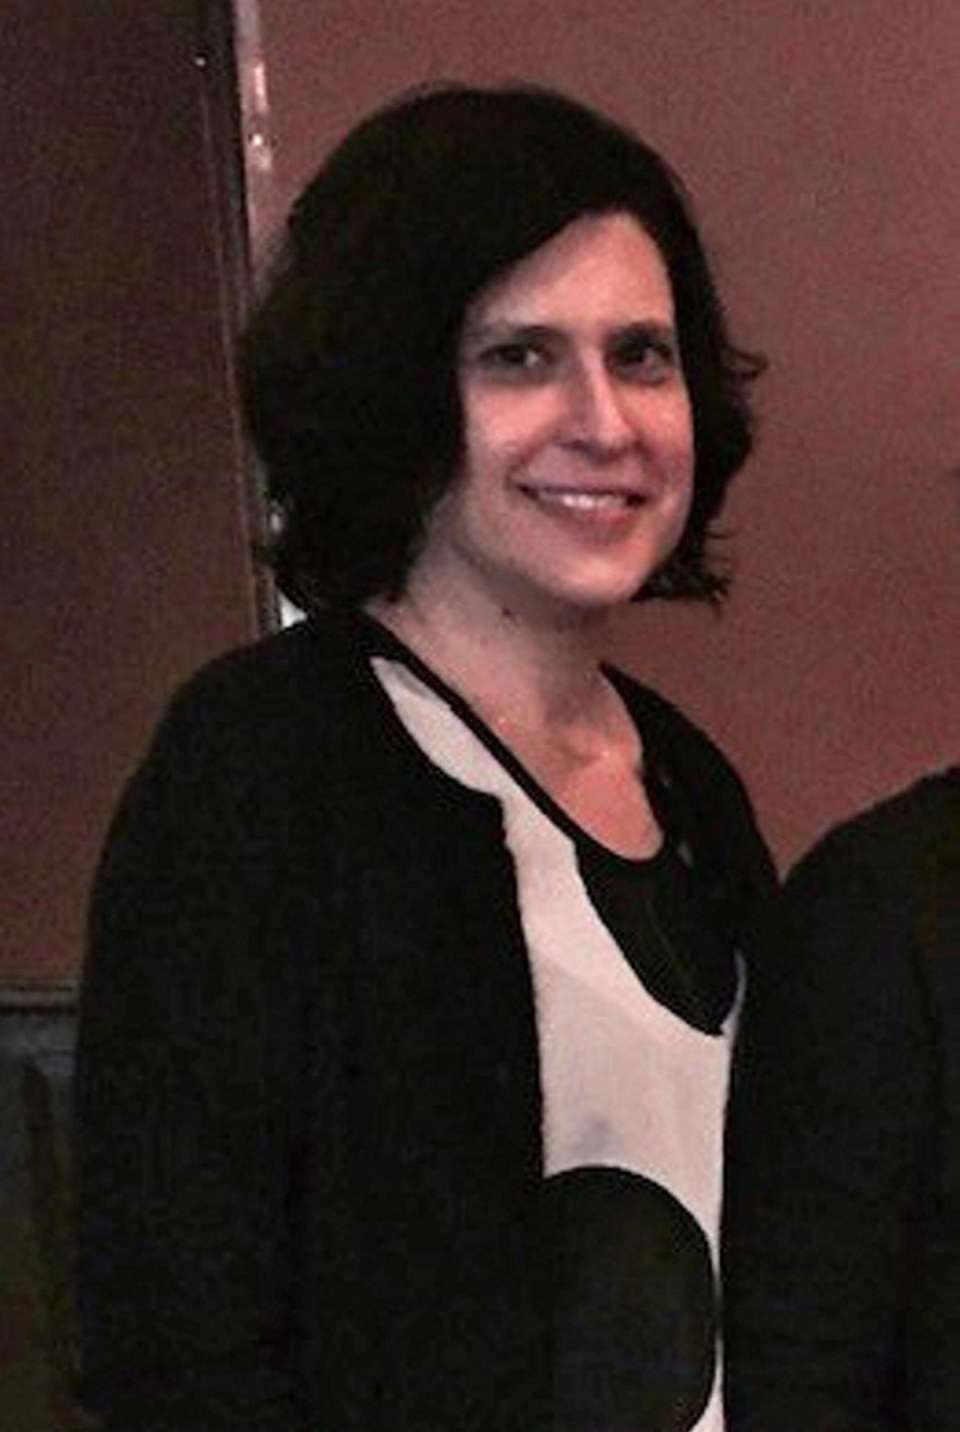 Christine Kay, a former editor at Newsday who